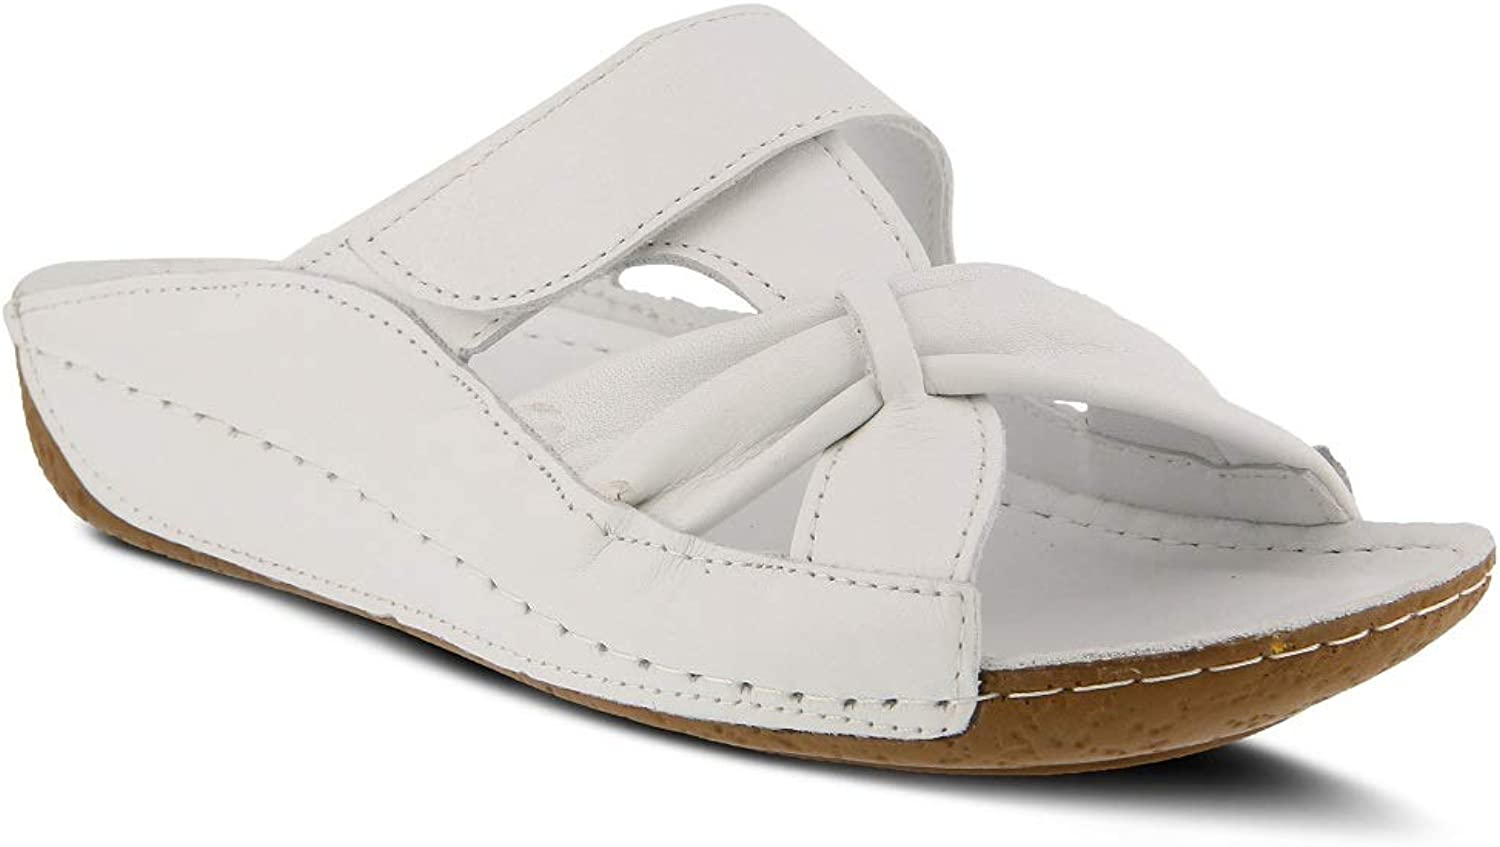 Spring Step Women's Gretta Sandals   color White   Leather Sandals